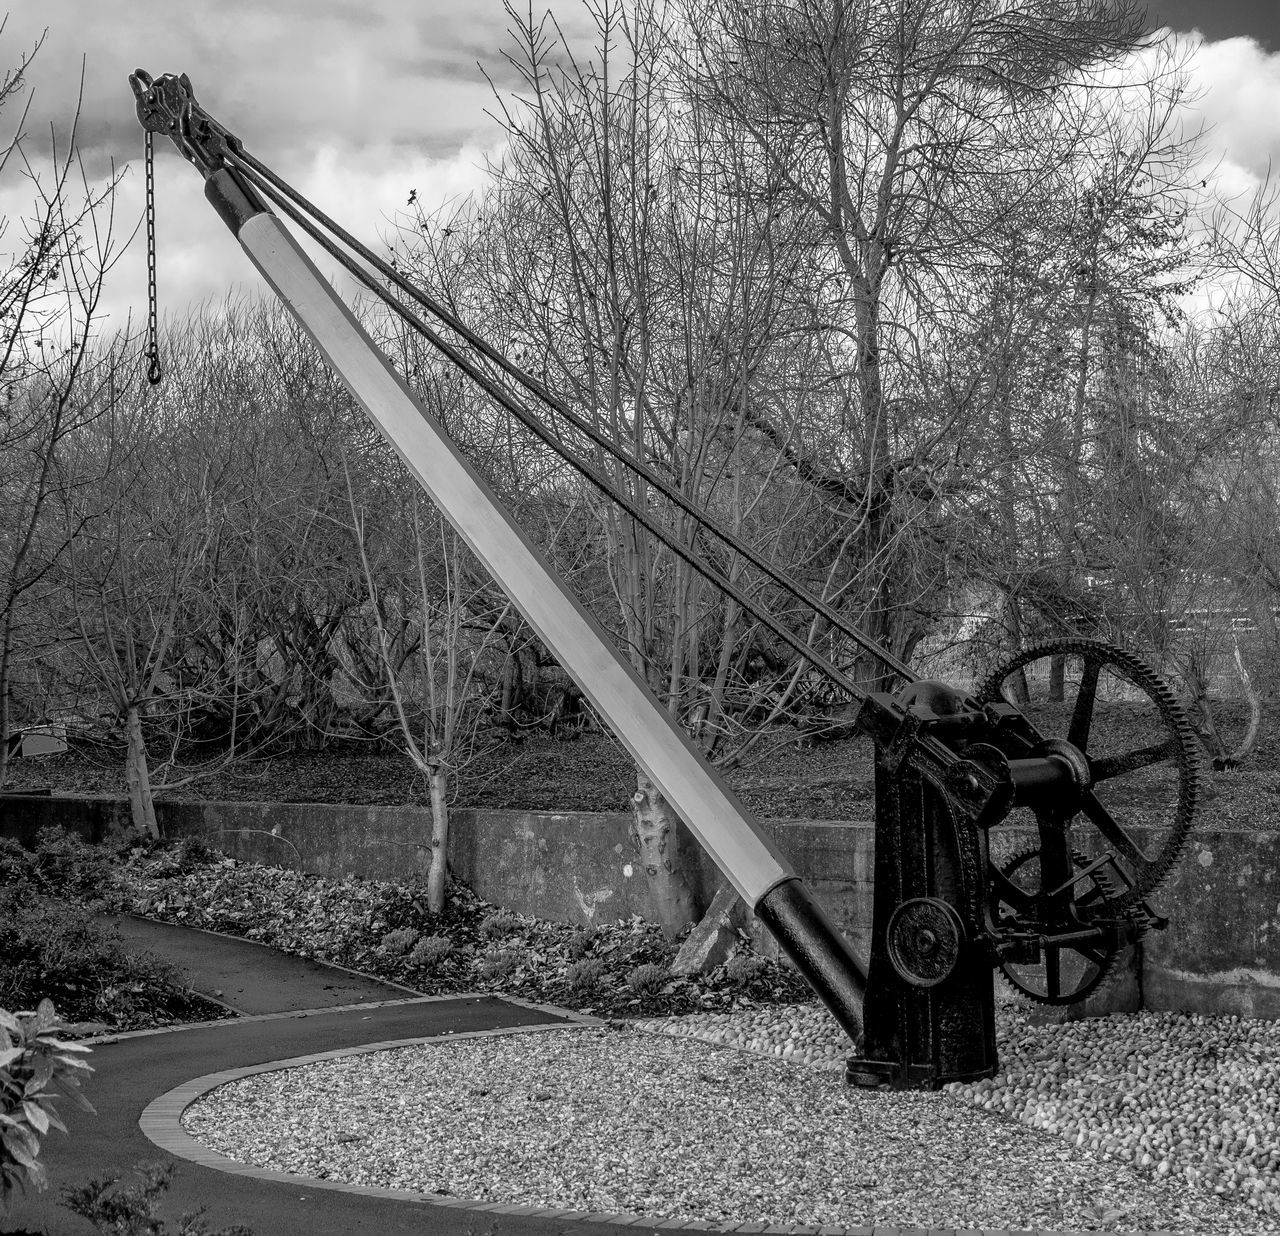 Loading Crane, Grand Union Canal, Northampton Arm Winch Crane Industrial Heritage Industrial Landscapes Northampton Monochrome Photography Monochrome Black And White FUJIFILM X-T2 Grand Union Canal Canal